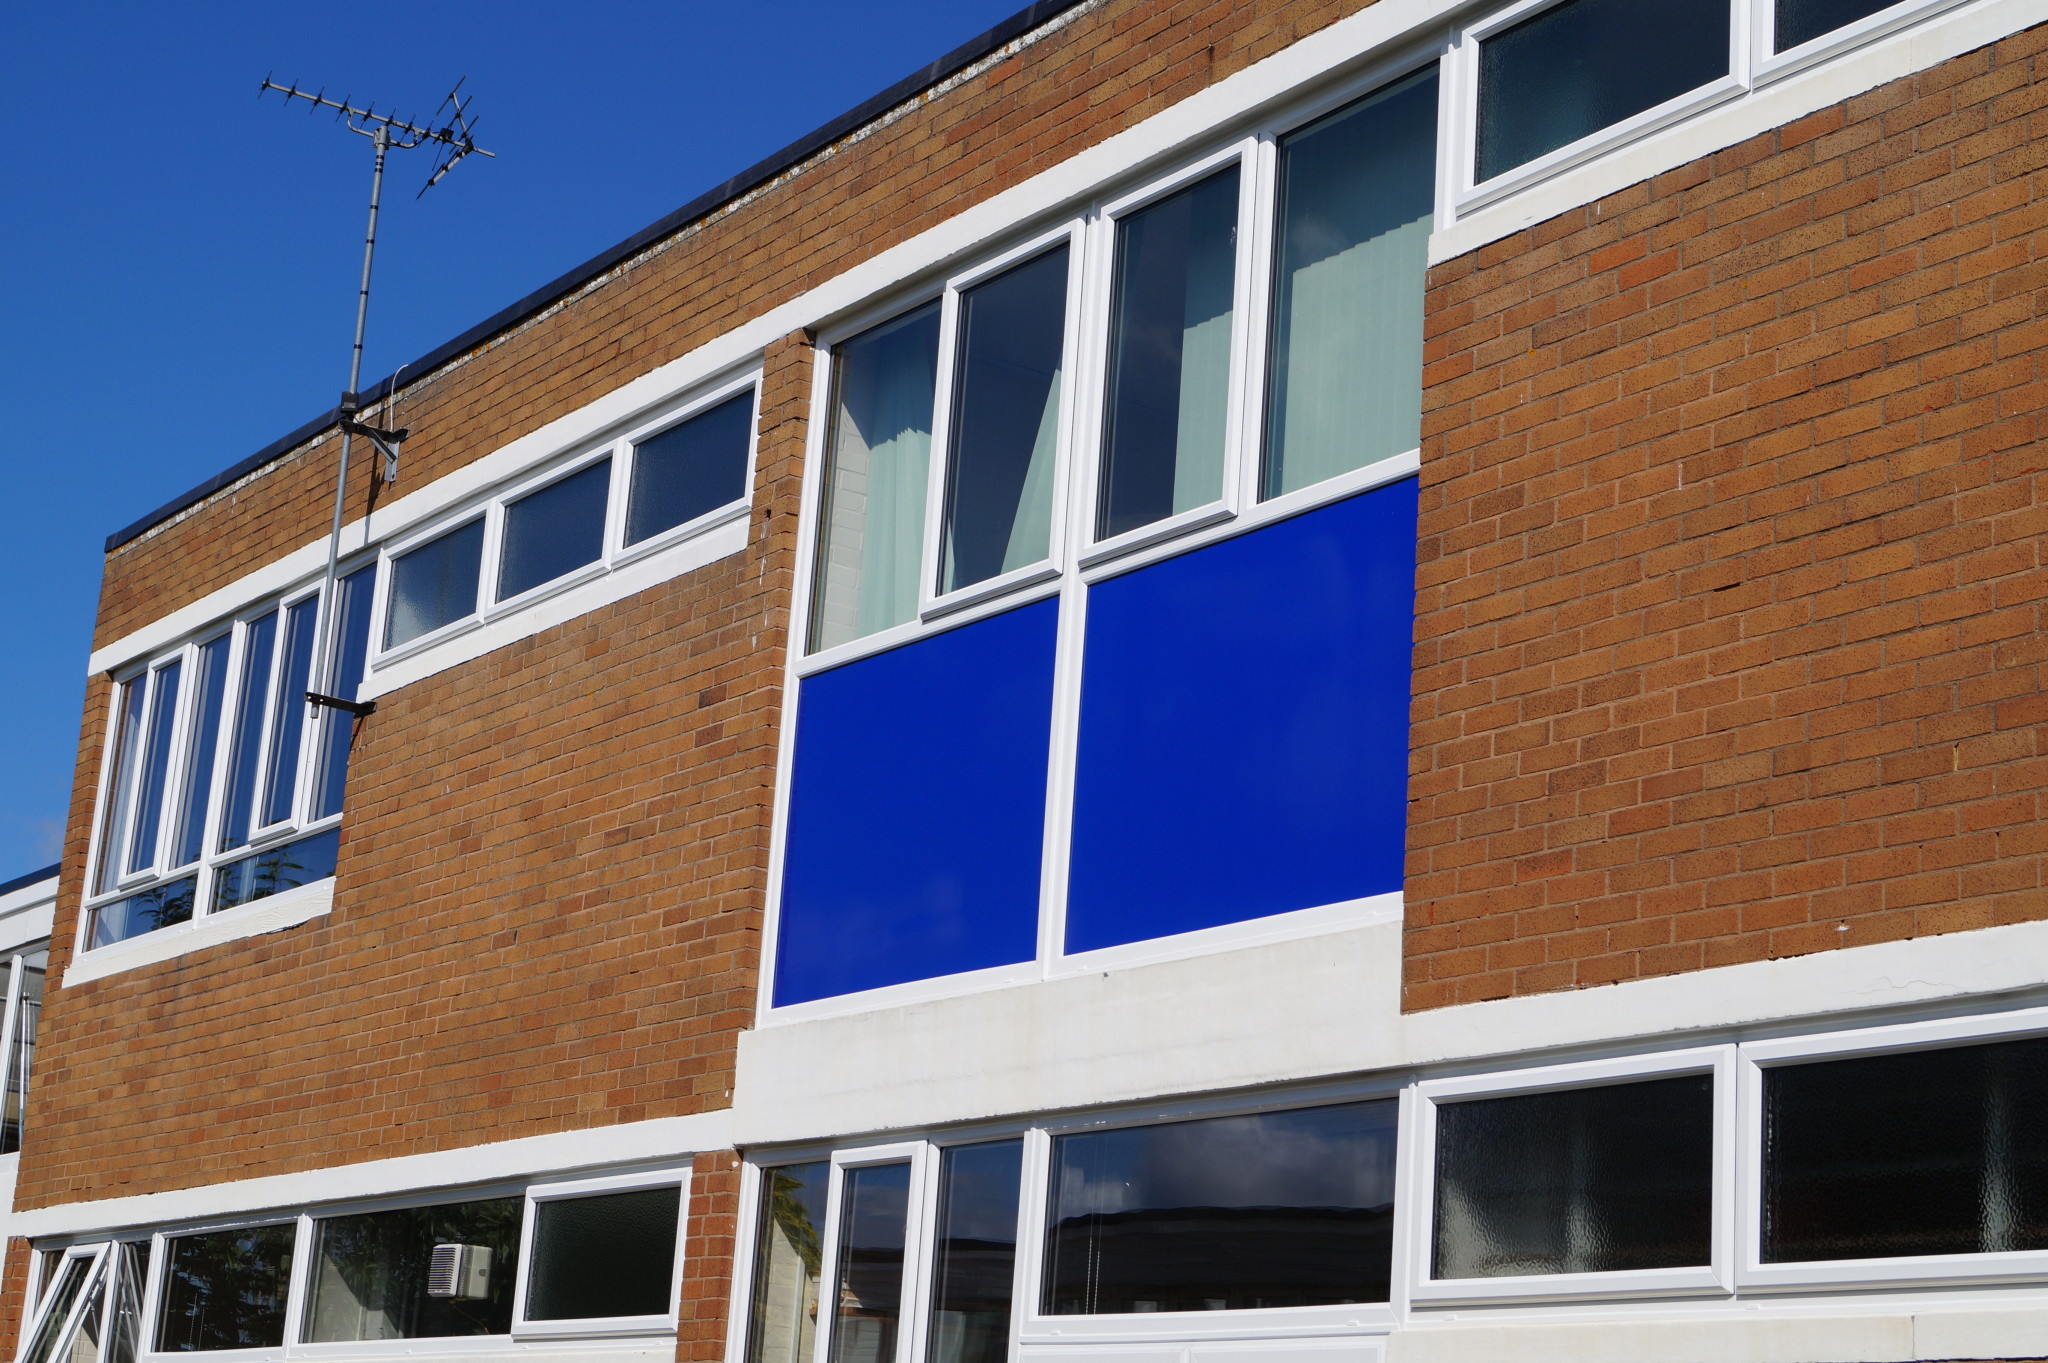 Metallic Infill Panel Replacement - Waller Glazing Kent